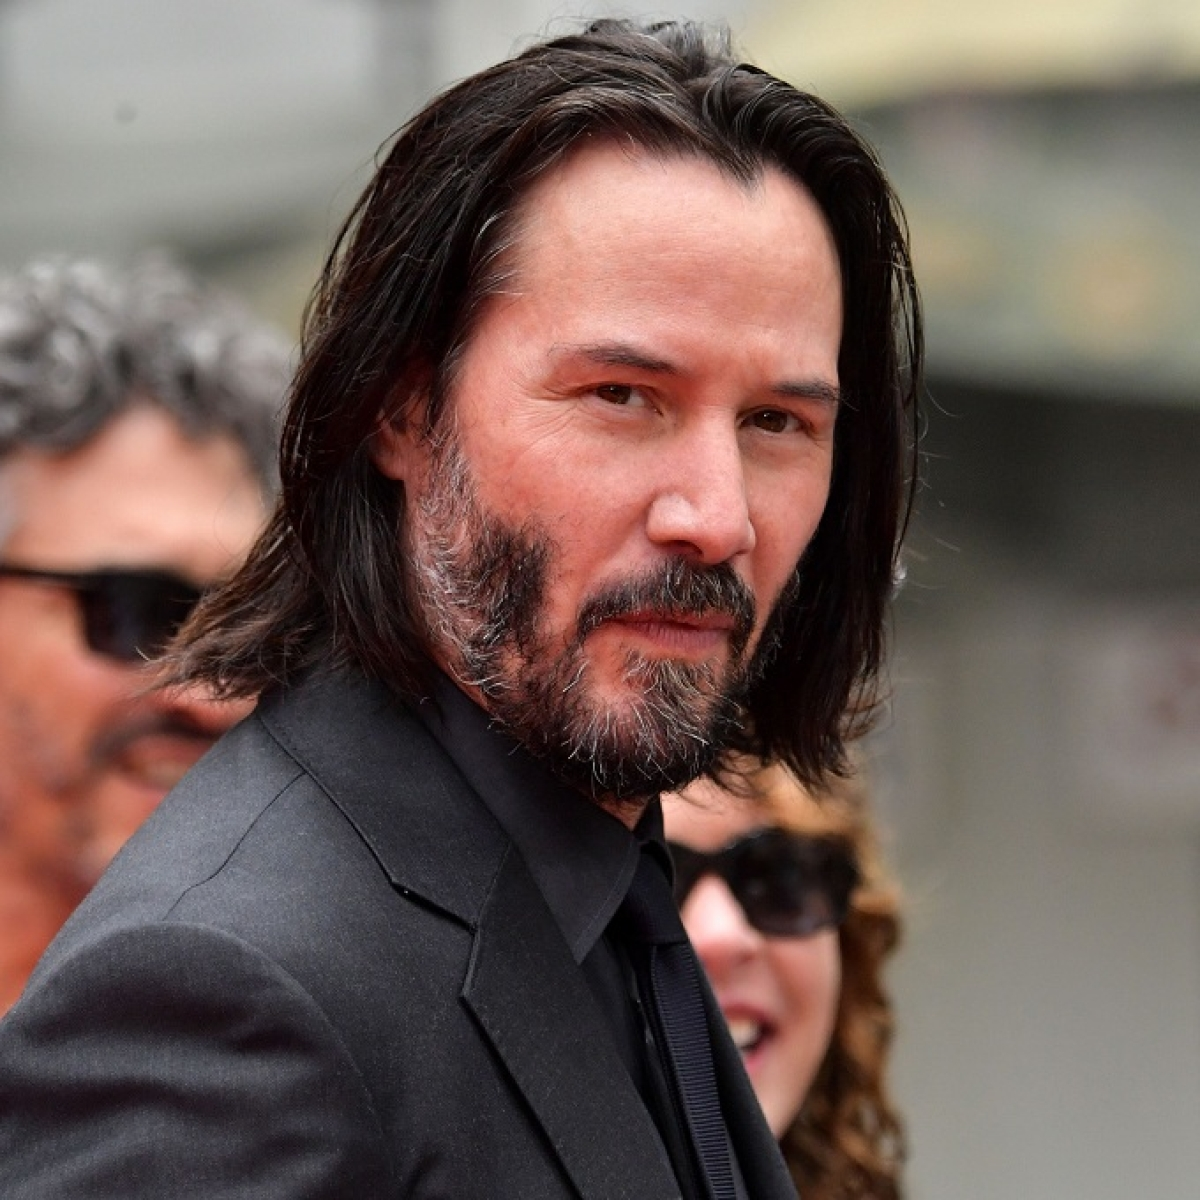 Keanu Reeves offering 15-minute virtual date for children cancer charity